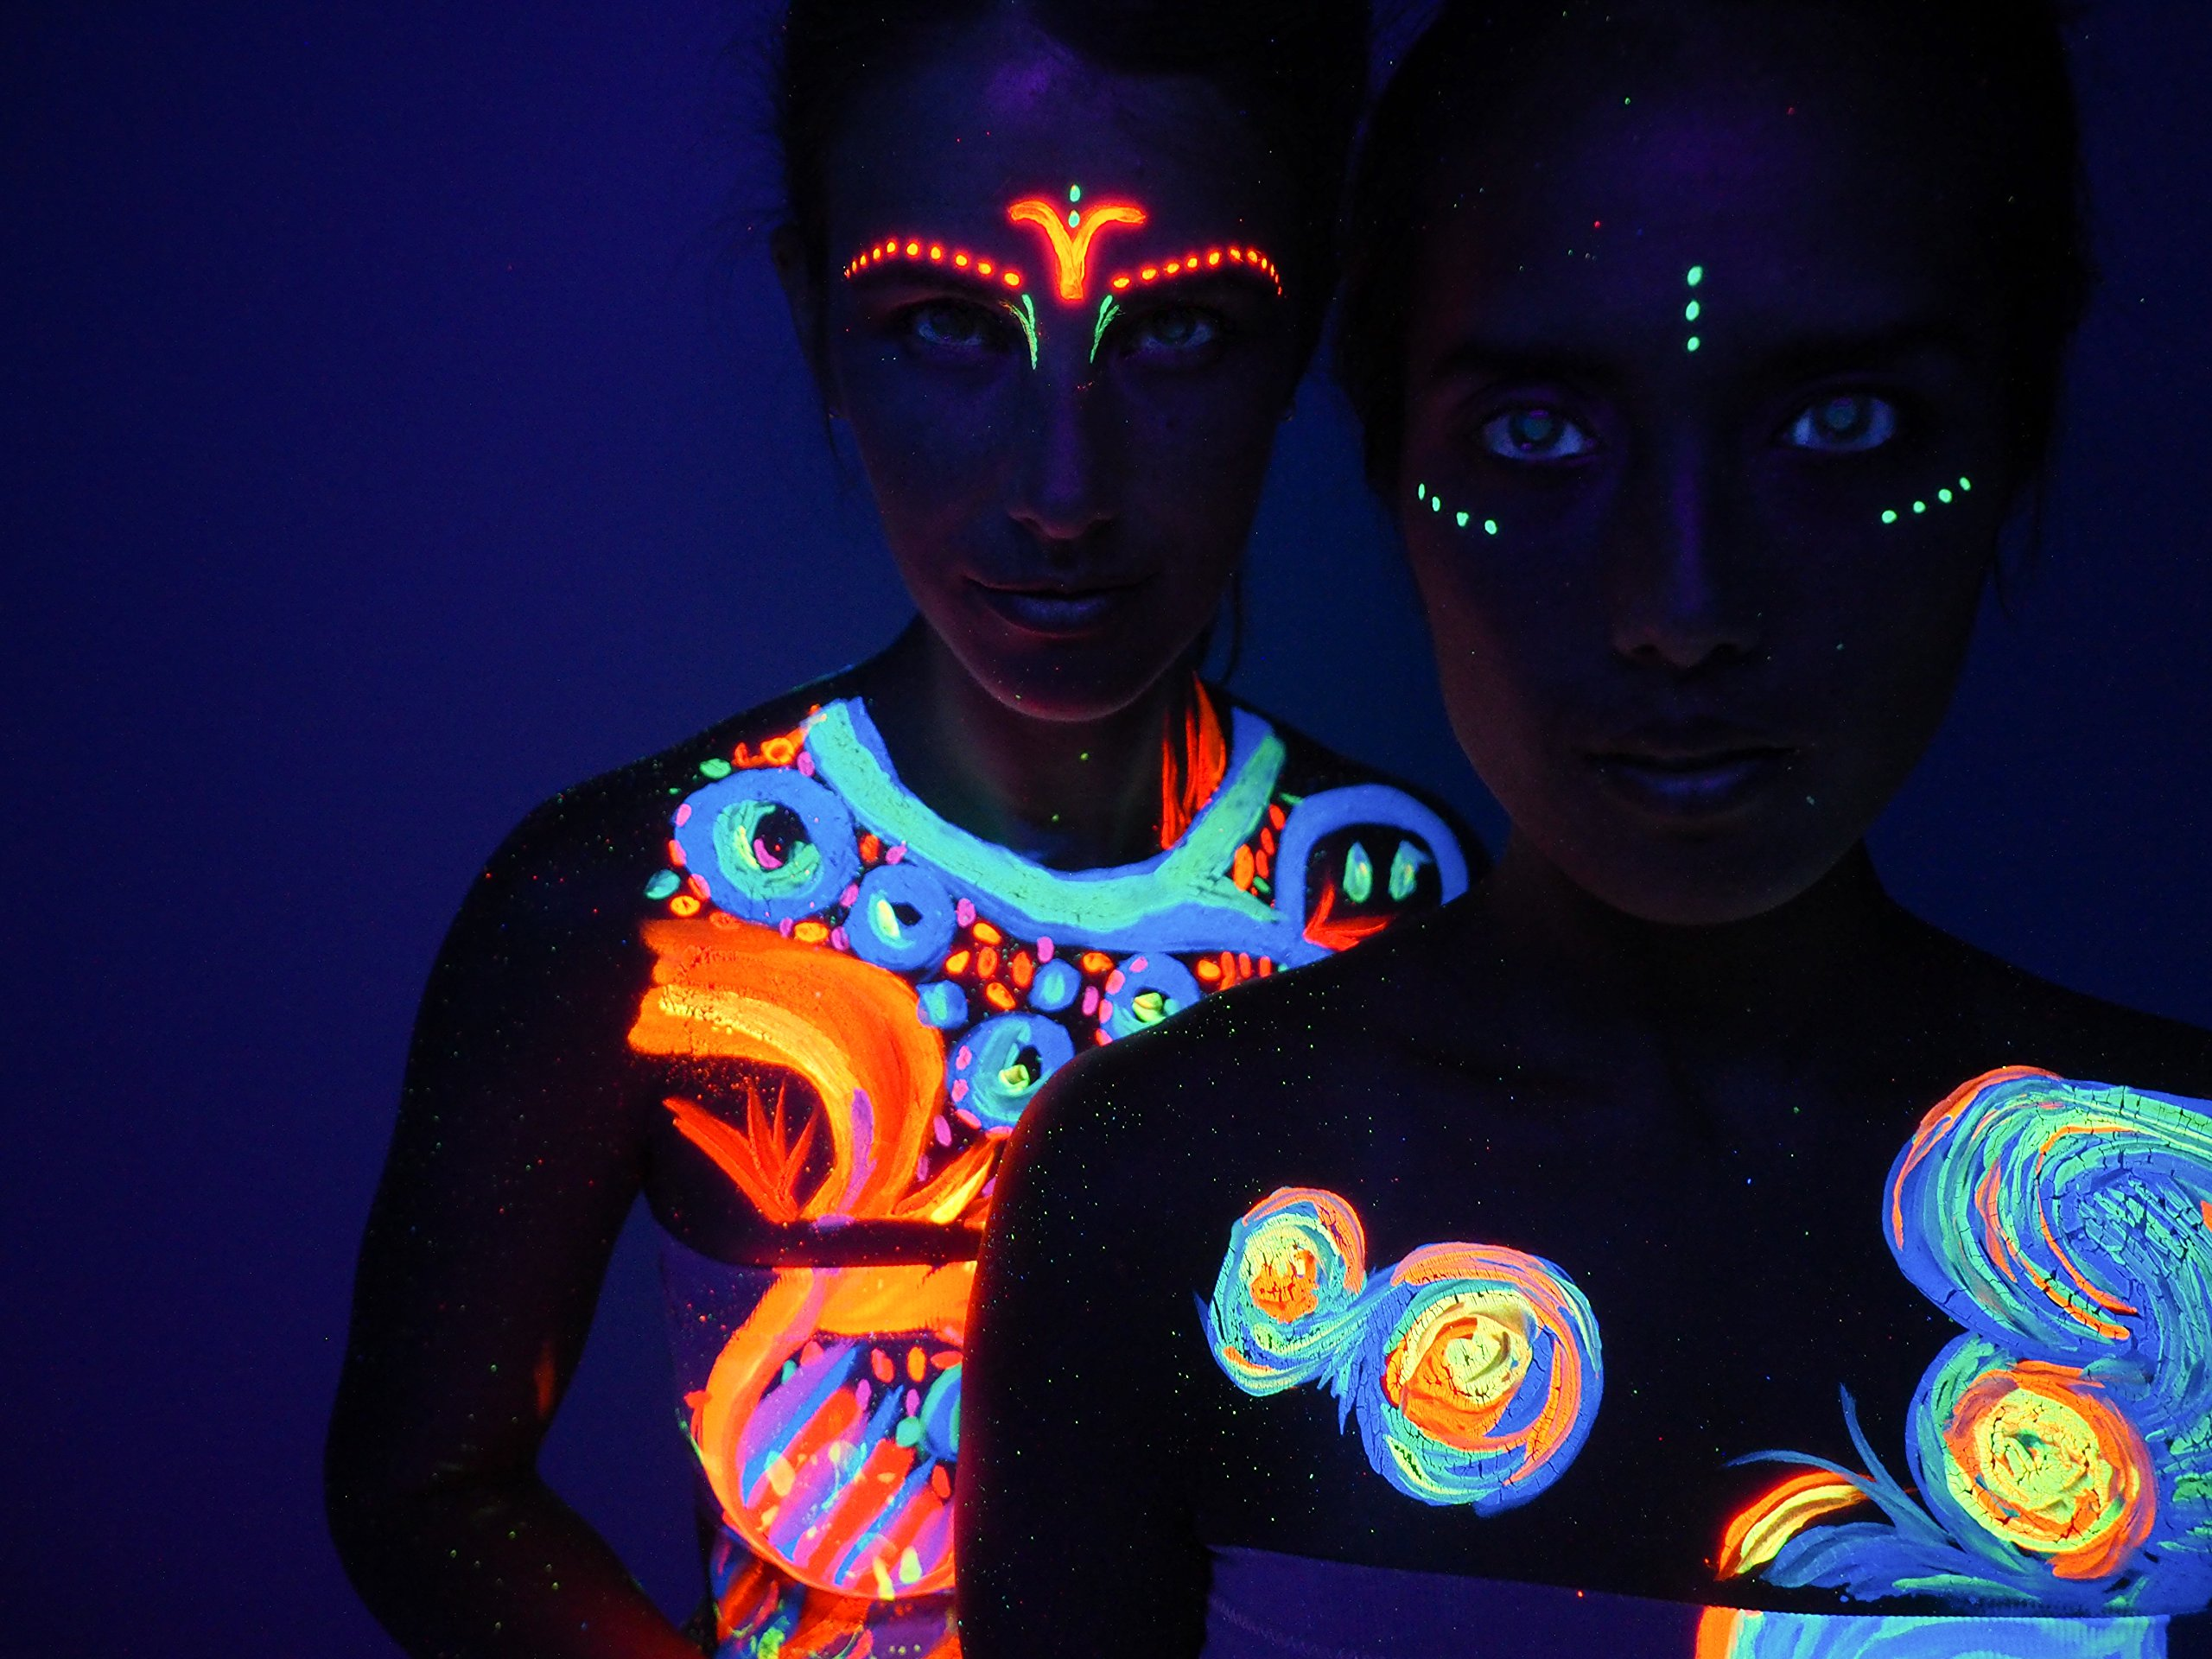 Neon Glow Blacklight Body Paint #1 Premium Set (6 pack of 2 oz. bottles) Glows Brighter, UV Reactive- Safe and Non-Toxic! Fluorescent Set Dries Quickly, Goes on Smooth, Not Clumpy by Neon Glow (Image #8)